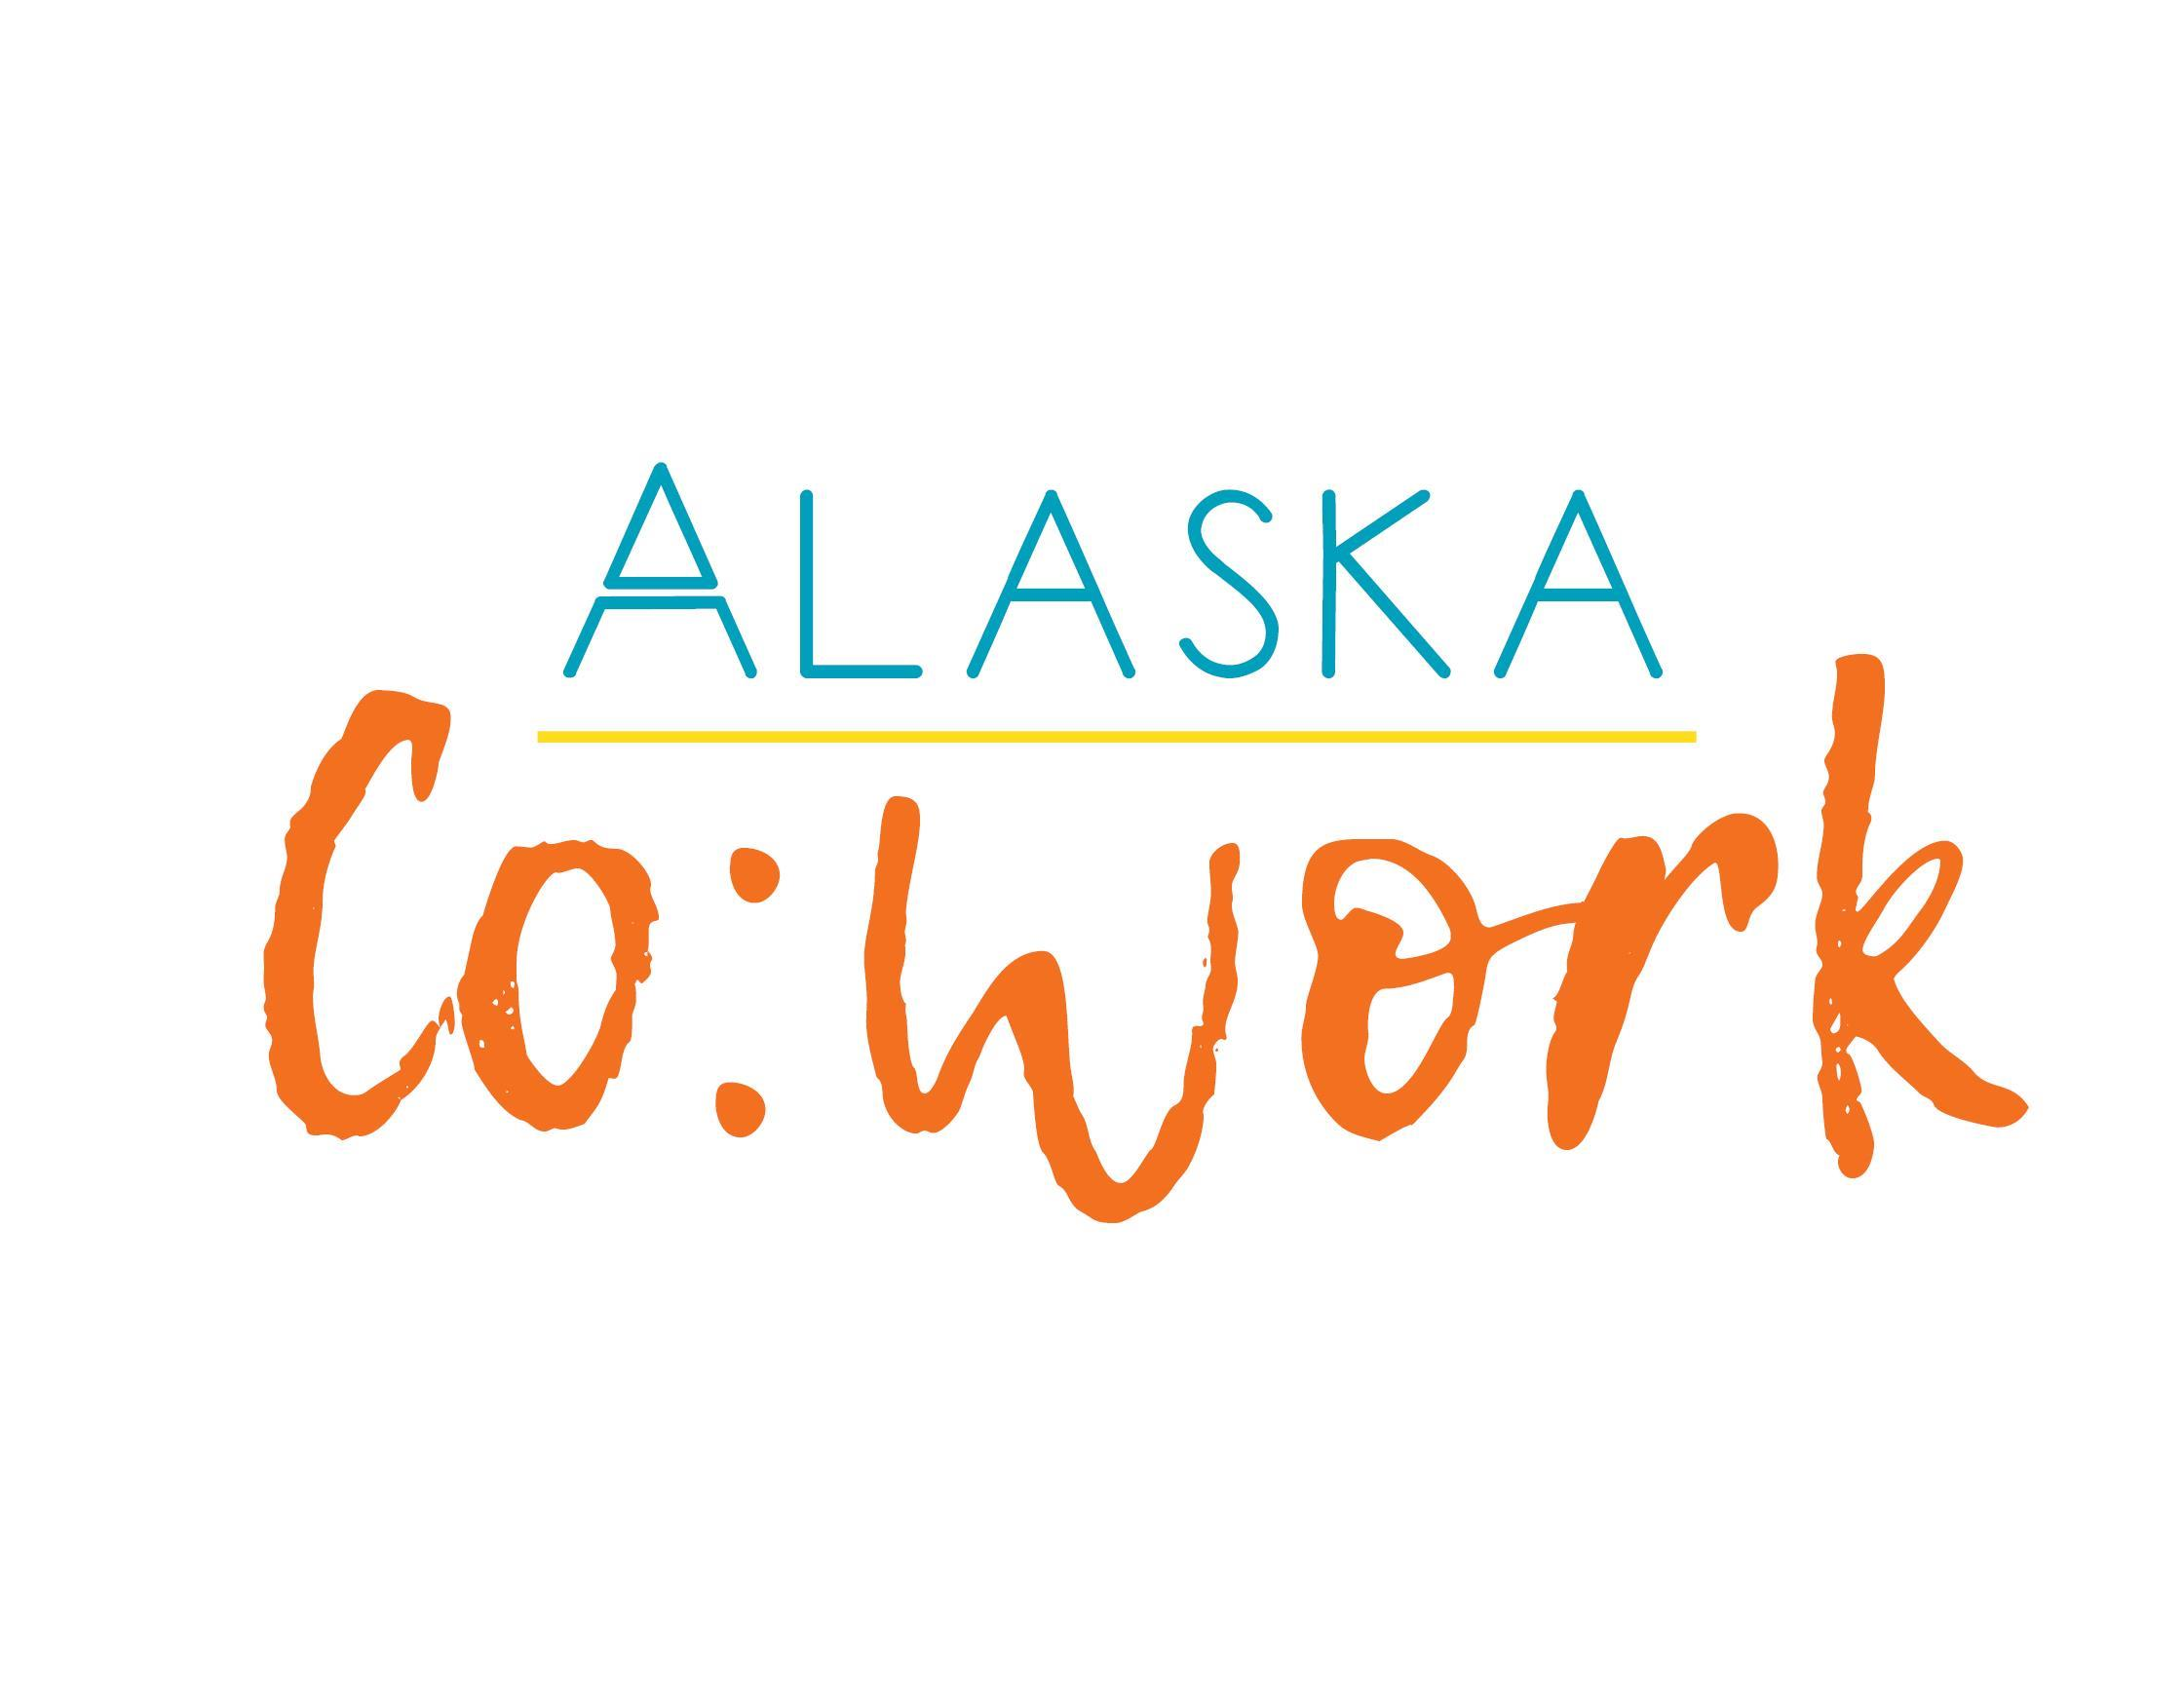 Logo of Alaska Co:Work / Northern Trust Real Estate Building